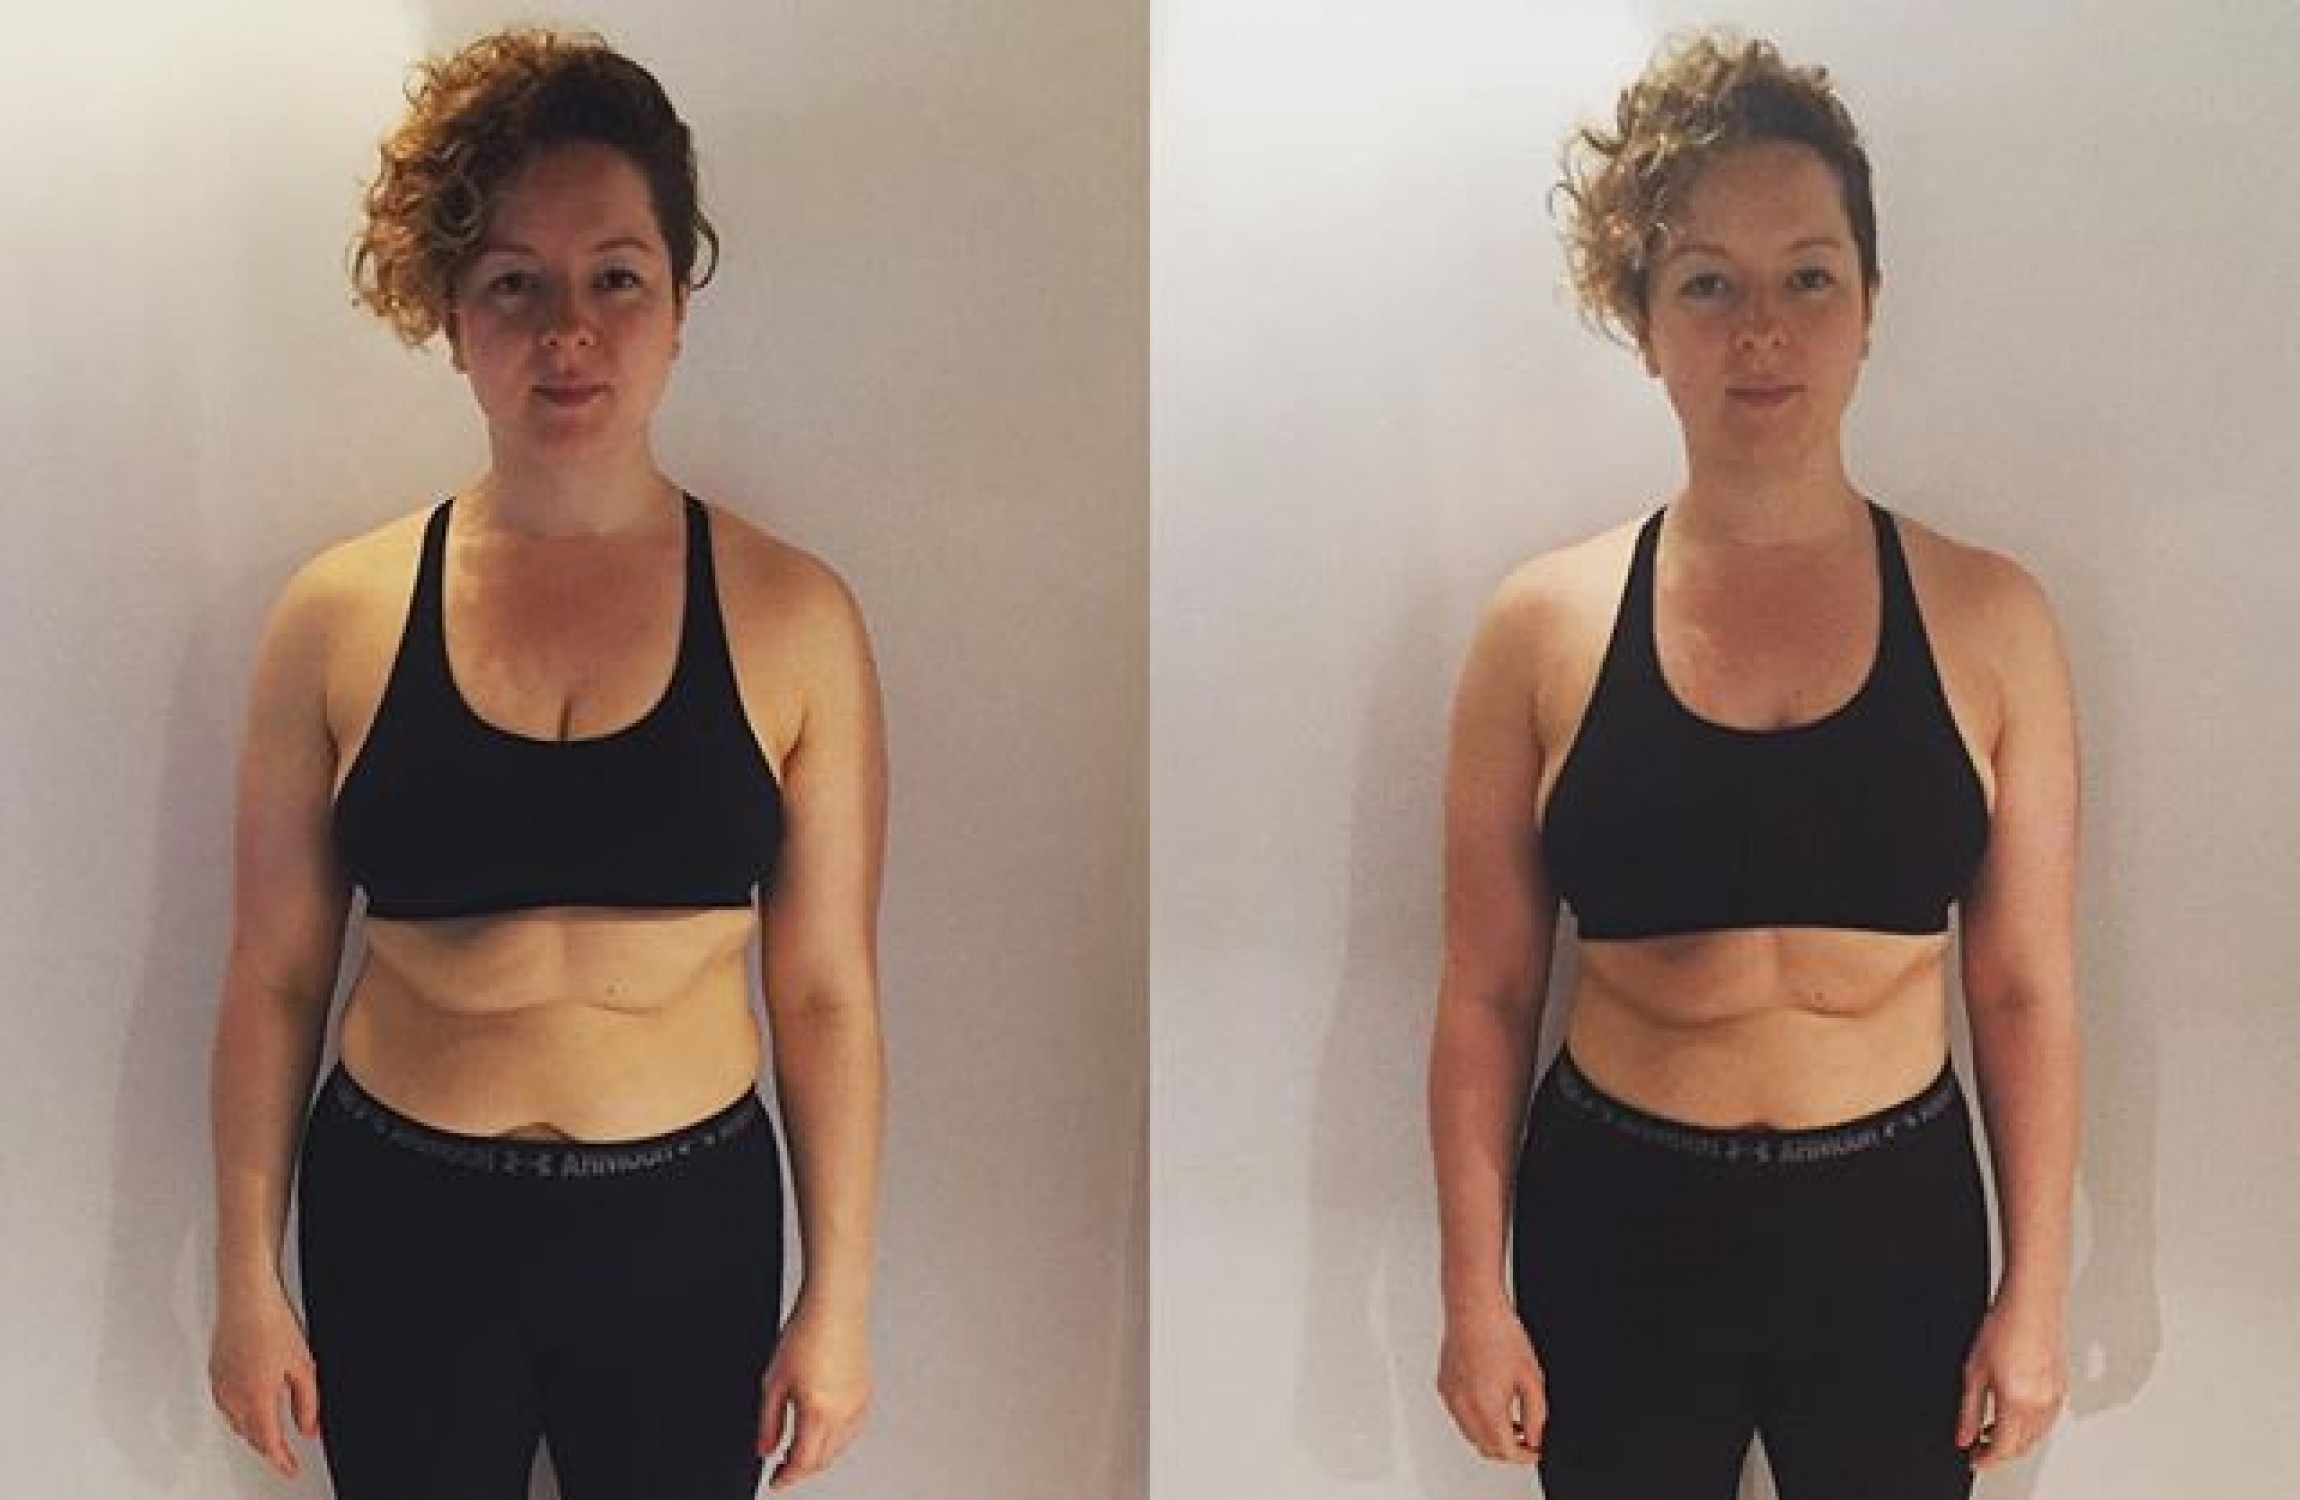 From The Daily Edge This Irish blogger lost a whopping 17 pounds in one week